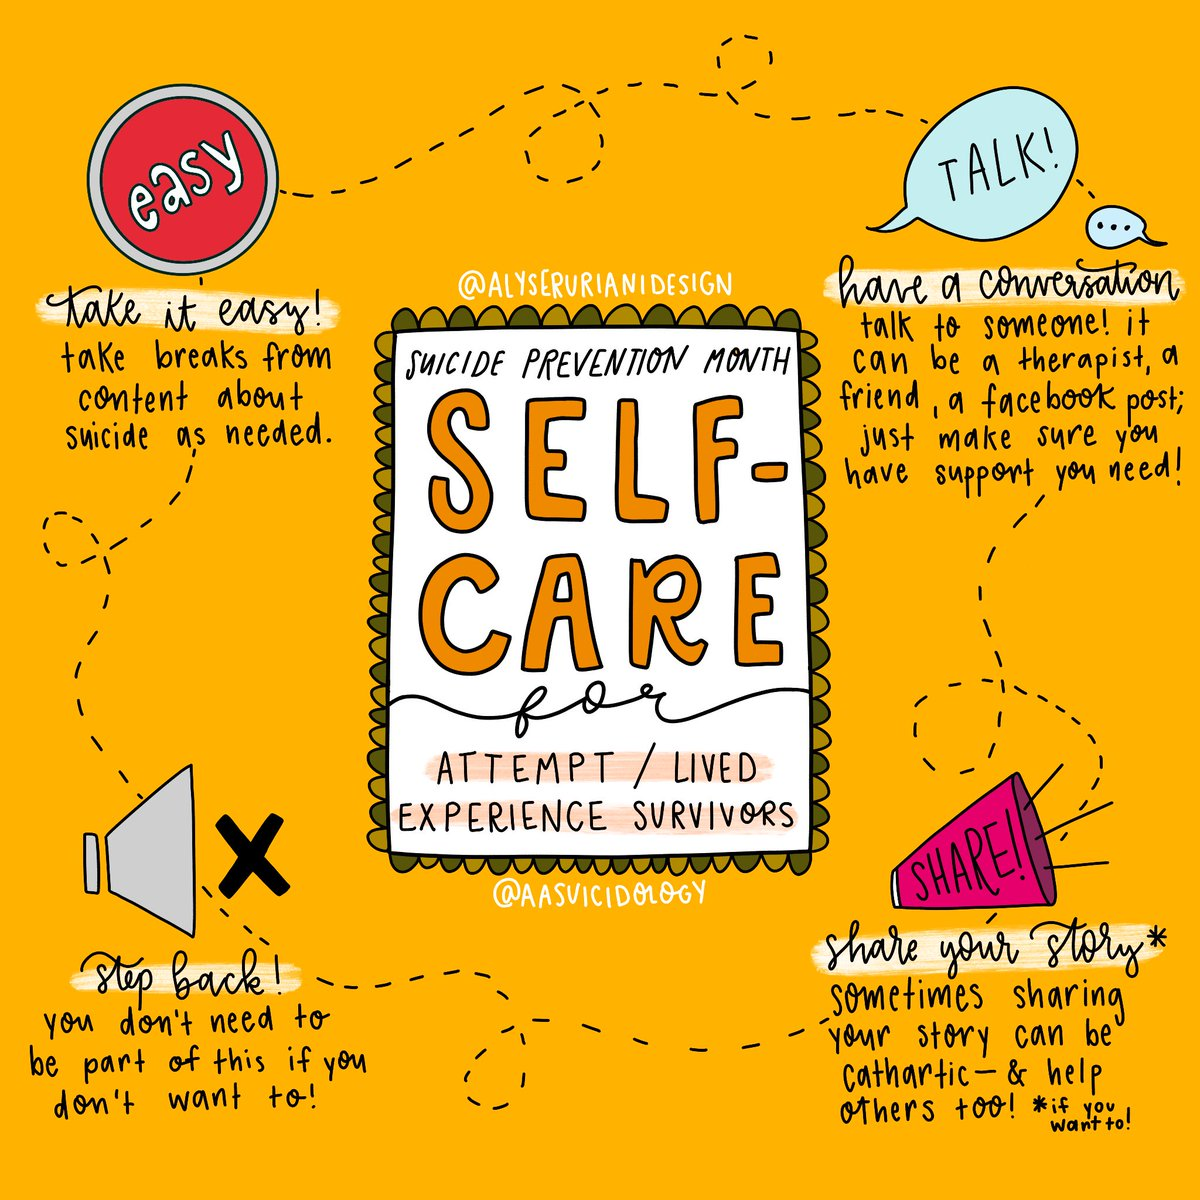 Suicide prevention month can be as exhausting as it is inspiring. Just a reminder to take care of yourself. #AAS365 #SPM19 @esylarur https://t.co/op05l6Bu2x